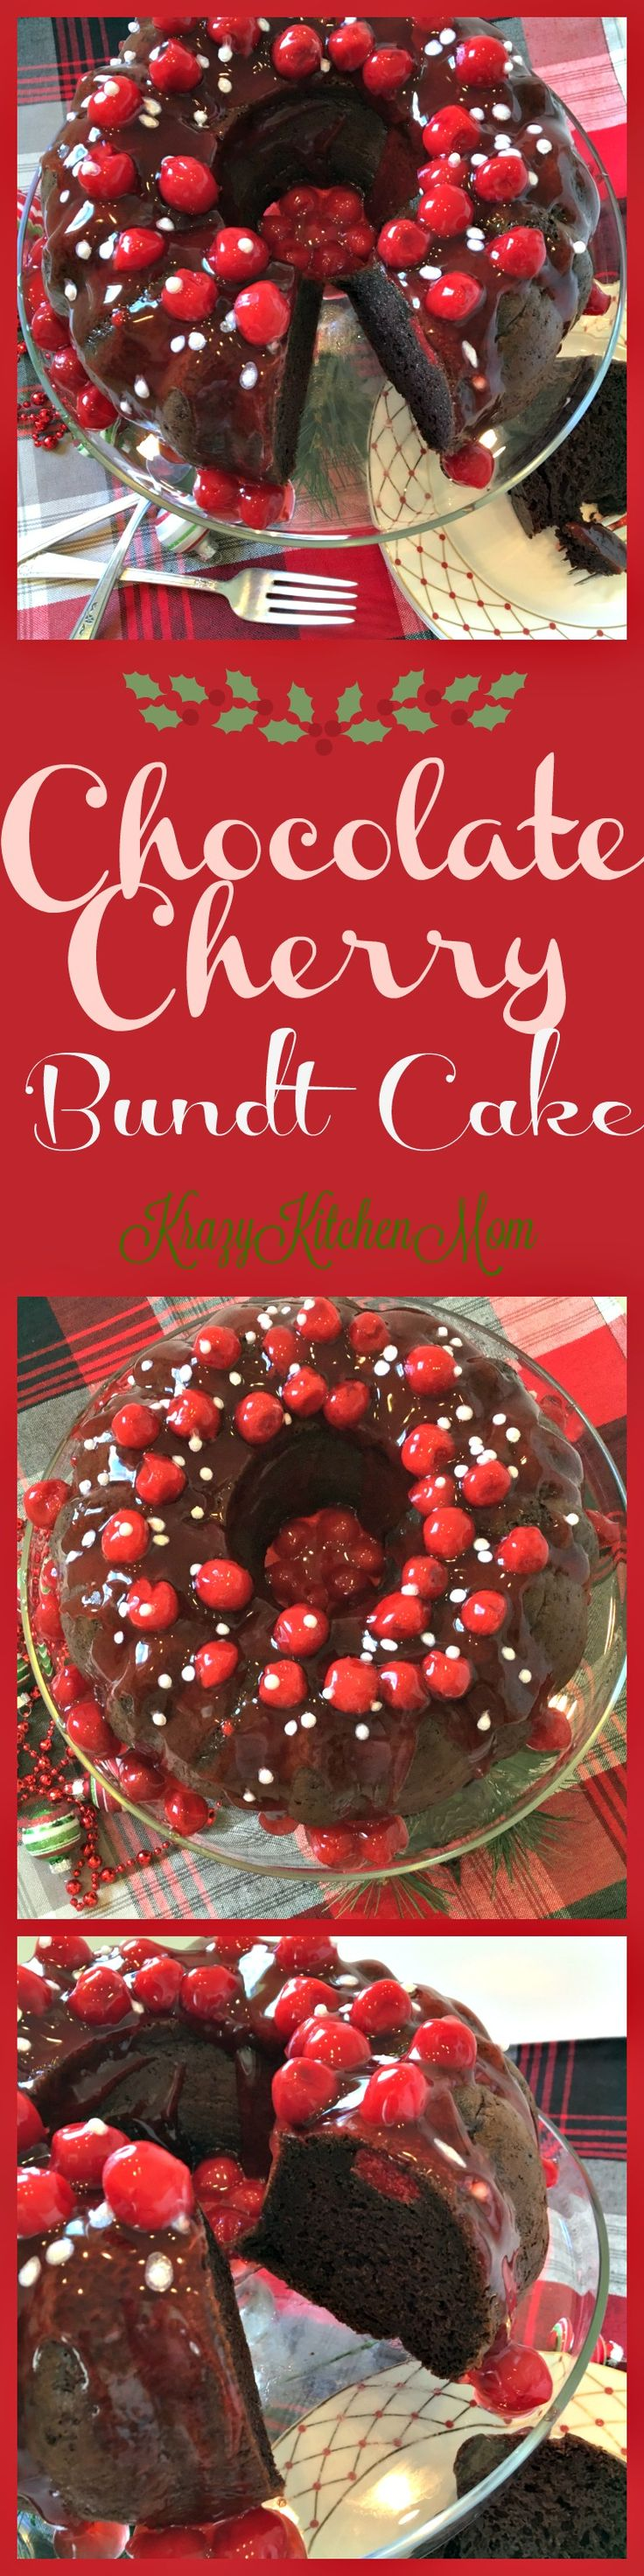 Chocolate Cherry Bundt Cake - http://www.krazykitchenmom.com/2016/11/chocolate-cherry-bundt-cake/?utm_campaign=coschedule&utm_source=pinterest&utm_medium=Krazykitchenmom&utm_content=Chocolate%20Cherry%20Bundt%20Cake